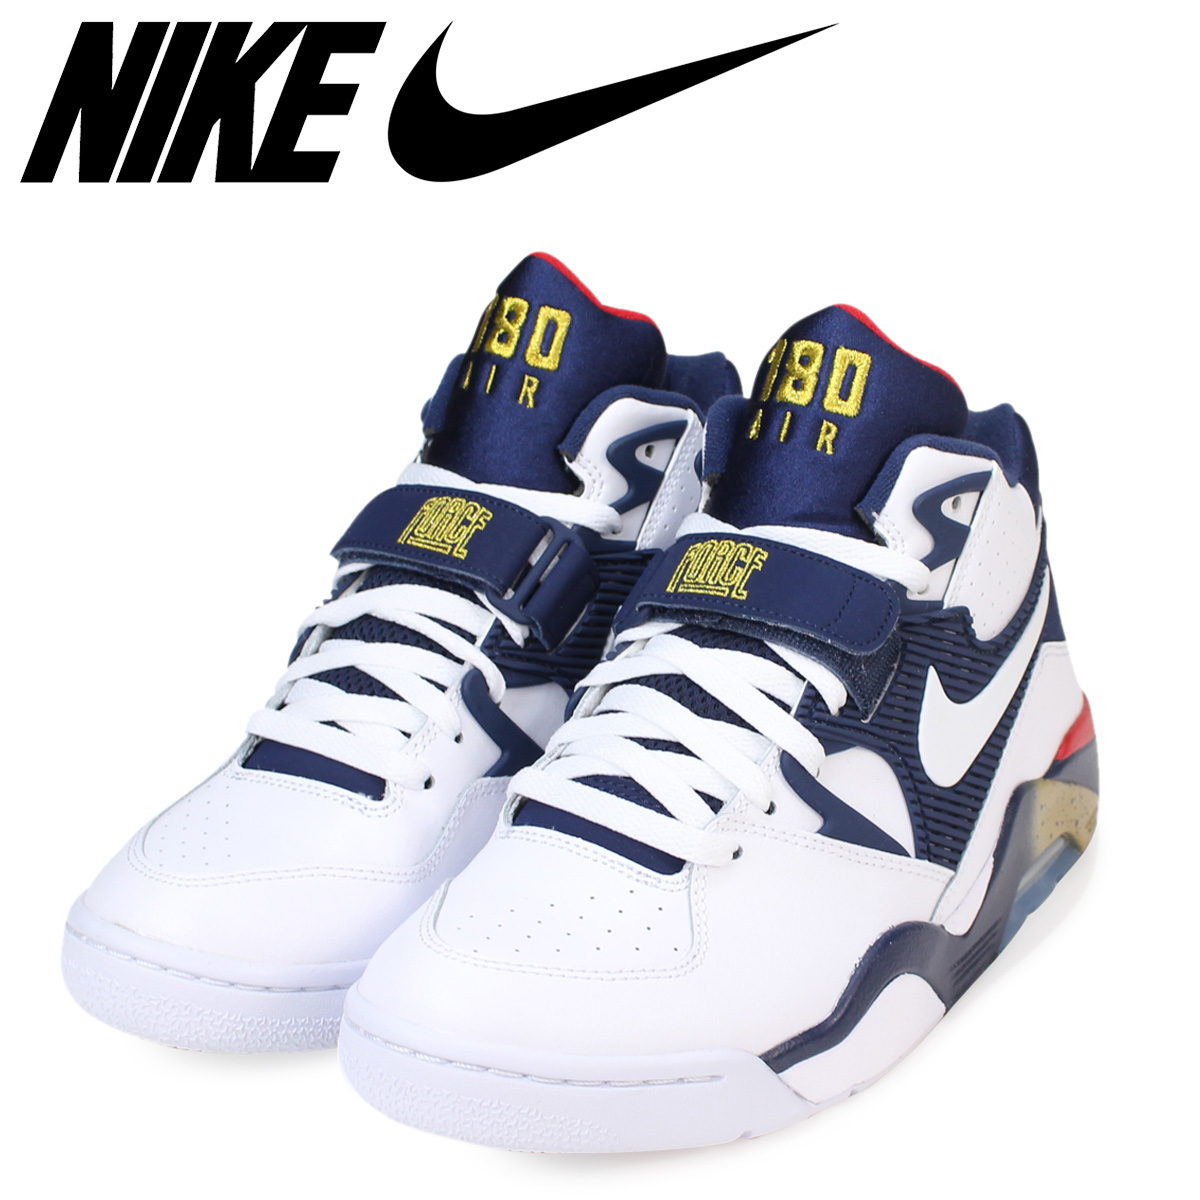 NIKE Nike air force sneakers AIR FORCE 180 OLYMPIC 310,095 100 men's shoes white [315 Shinnyu load] [173]